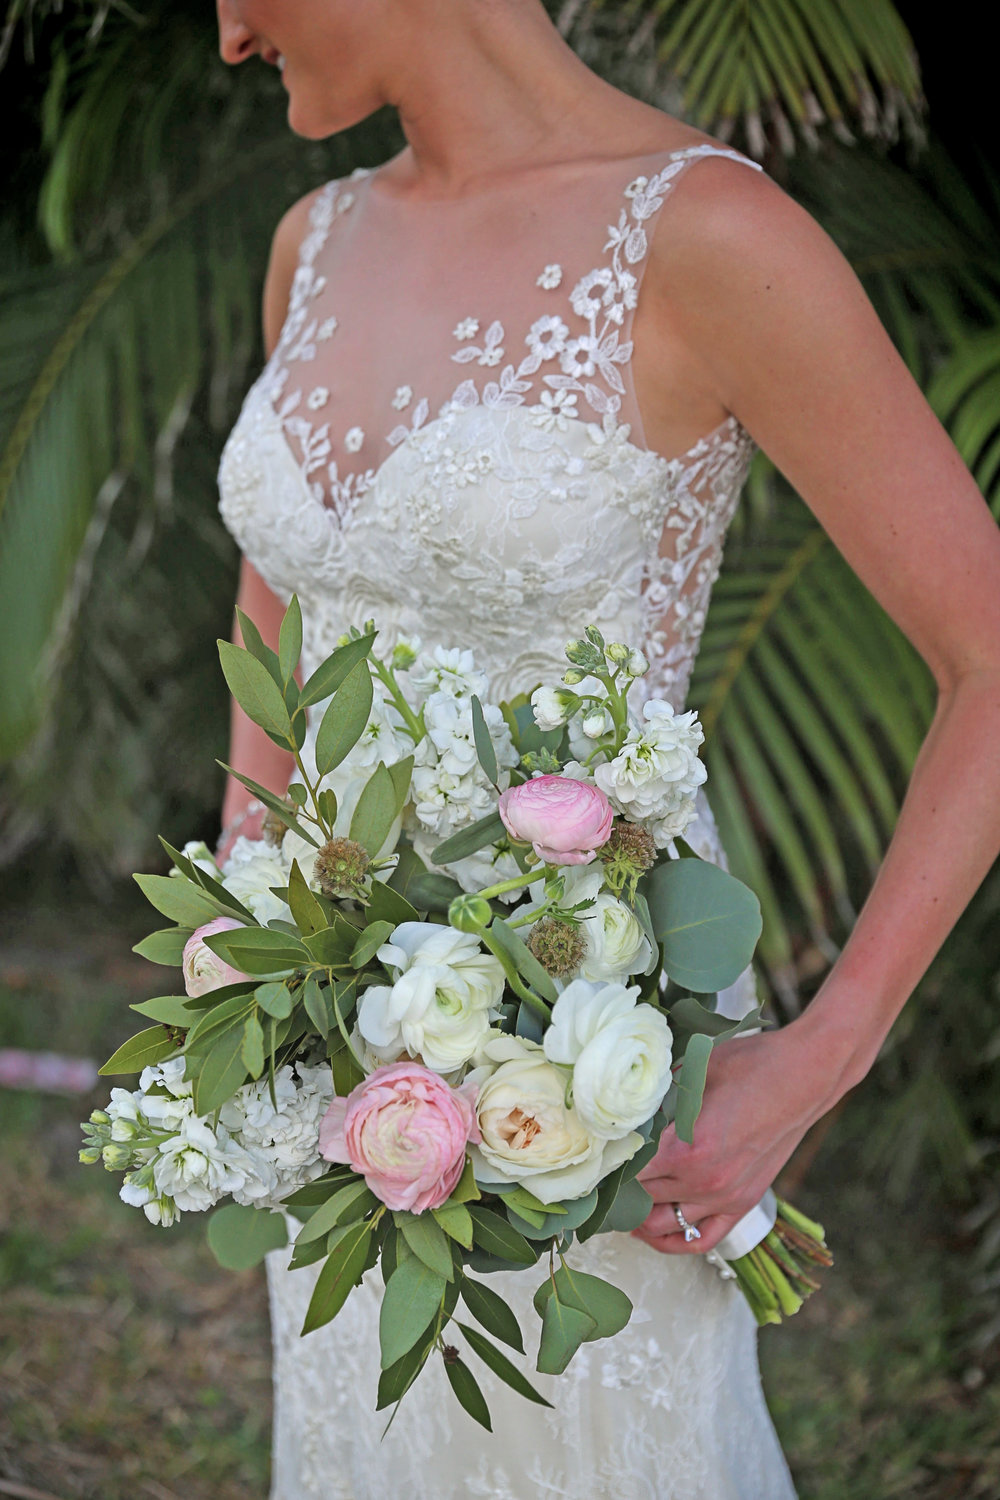 The bride carried a natural bouquet of ivory and pink ranunculus, ivory stalk, and scabiosa, accented with greenery like sage and eucalyptus.